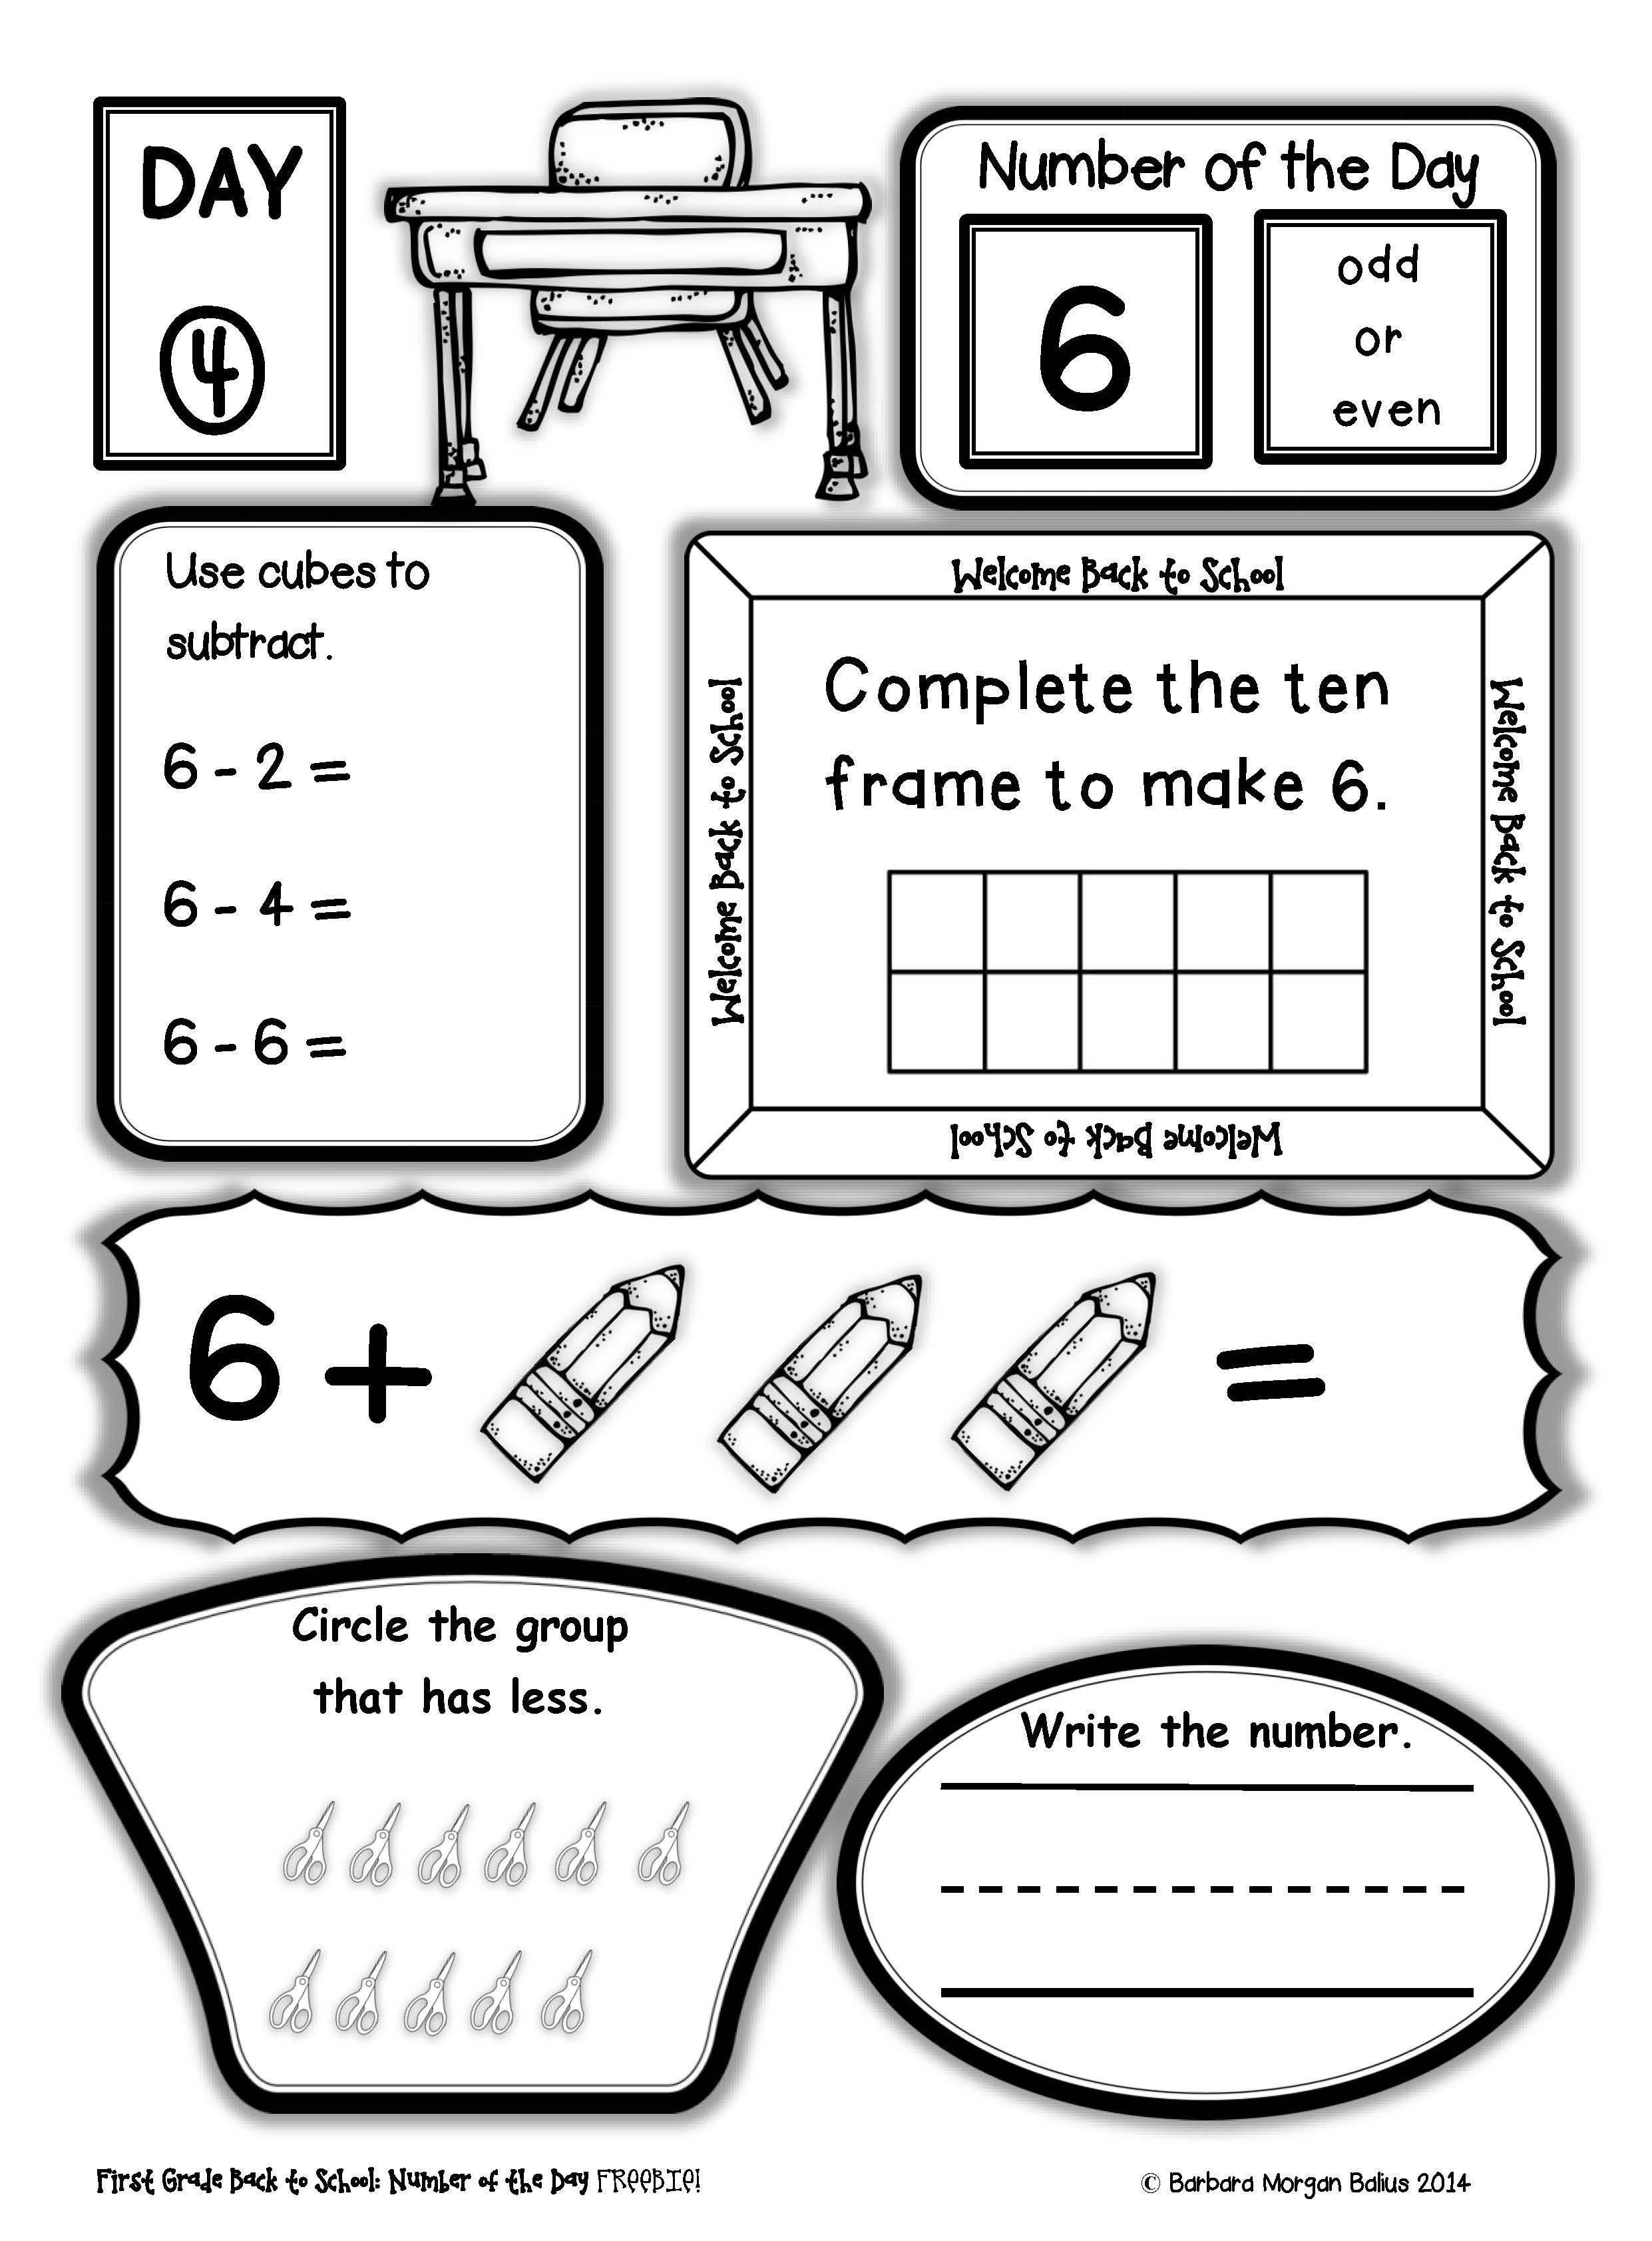 First Grade Back To School Number Of The Day Freebie! All Students - Free Printable Number Of The Day Worksheets